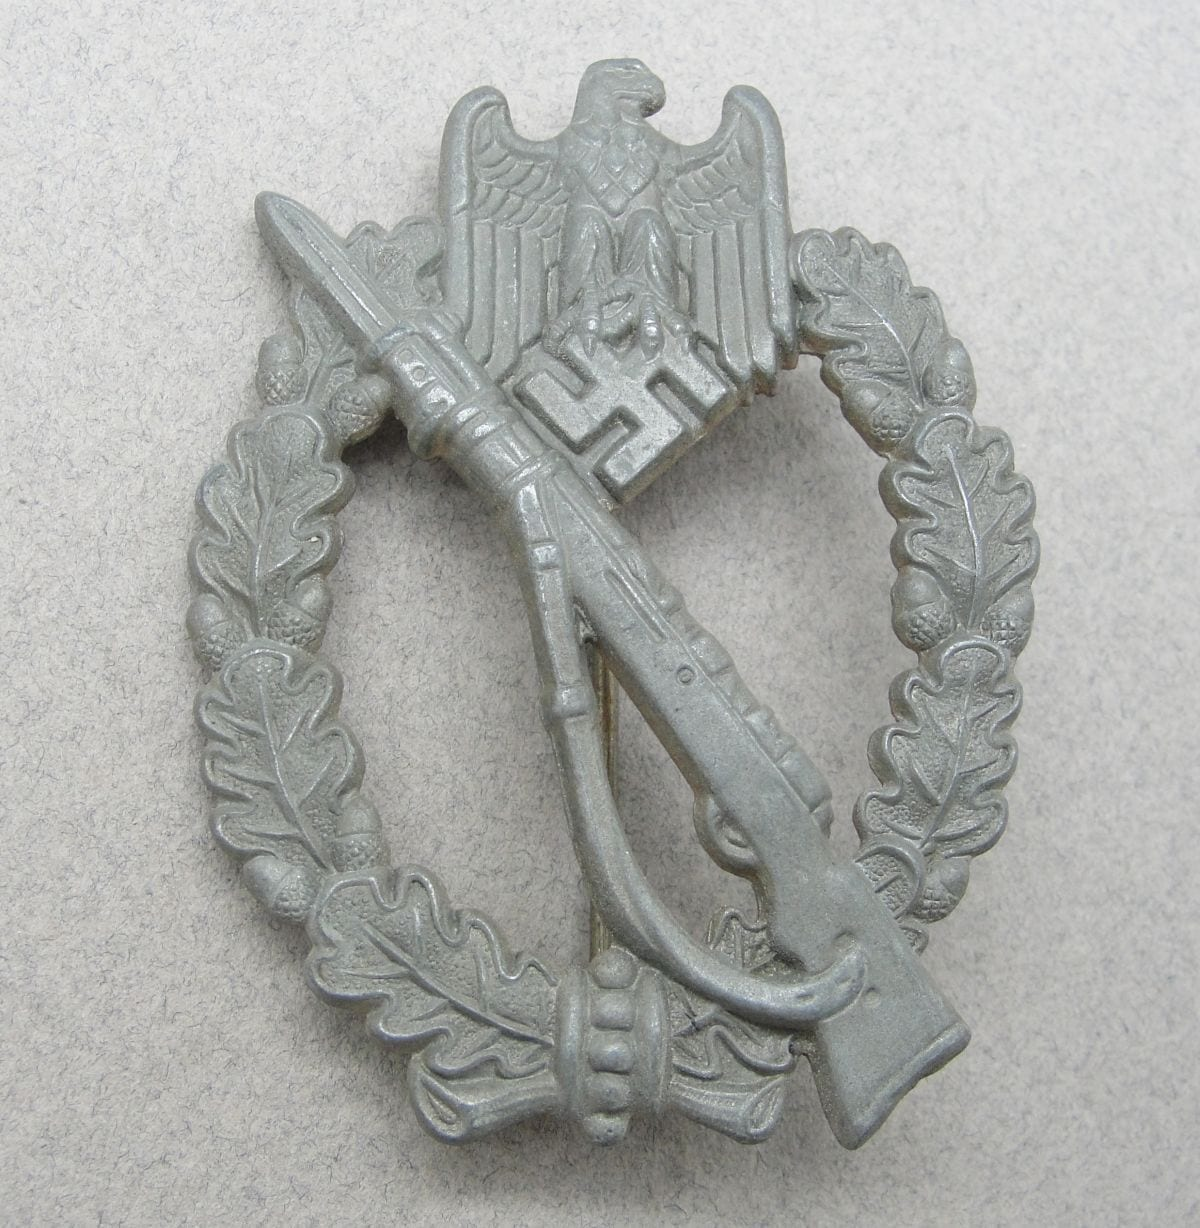 Army/Waffen-SS Infantry Assault Badge, Silver Grade, with Original Price on Reverse